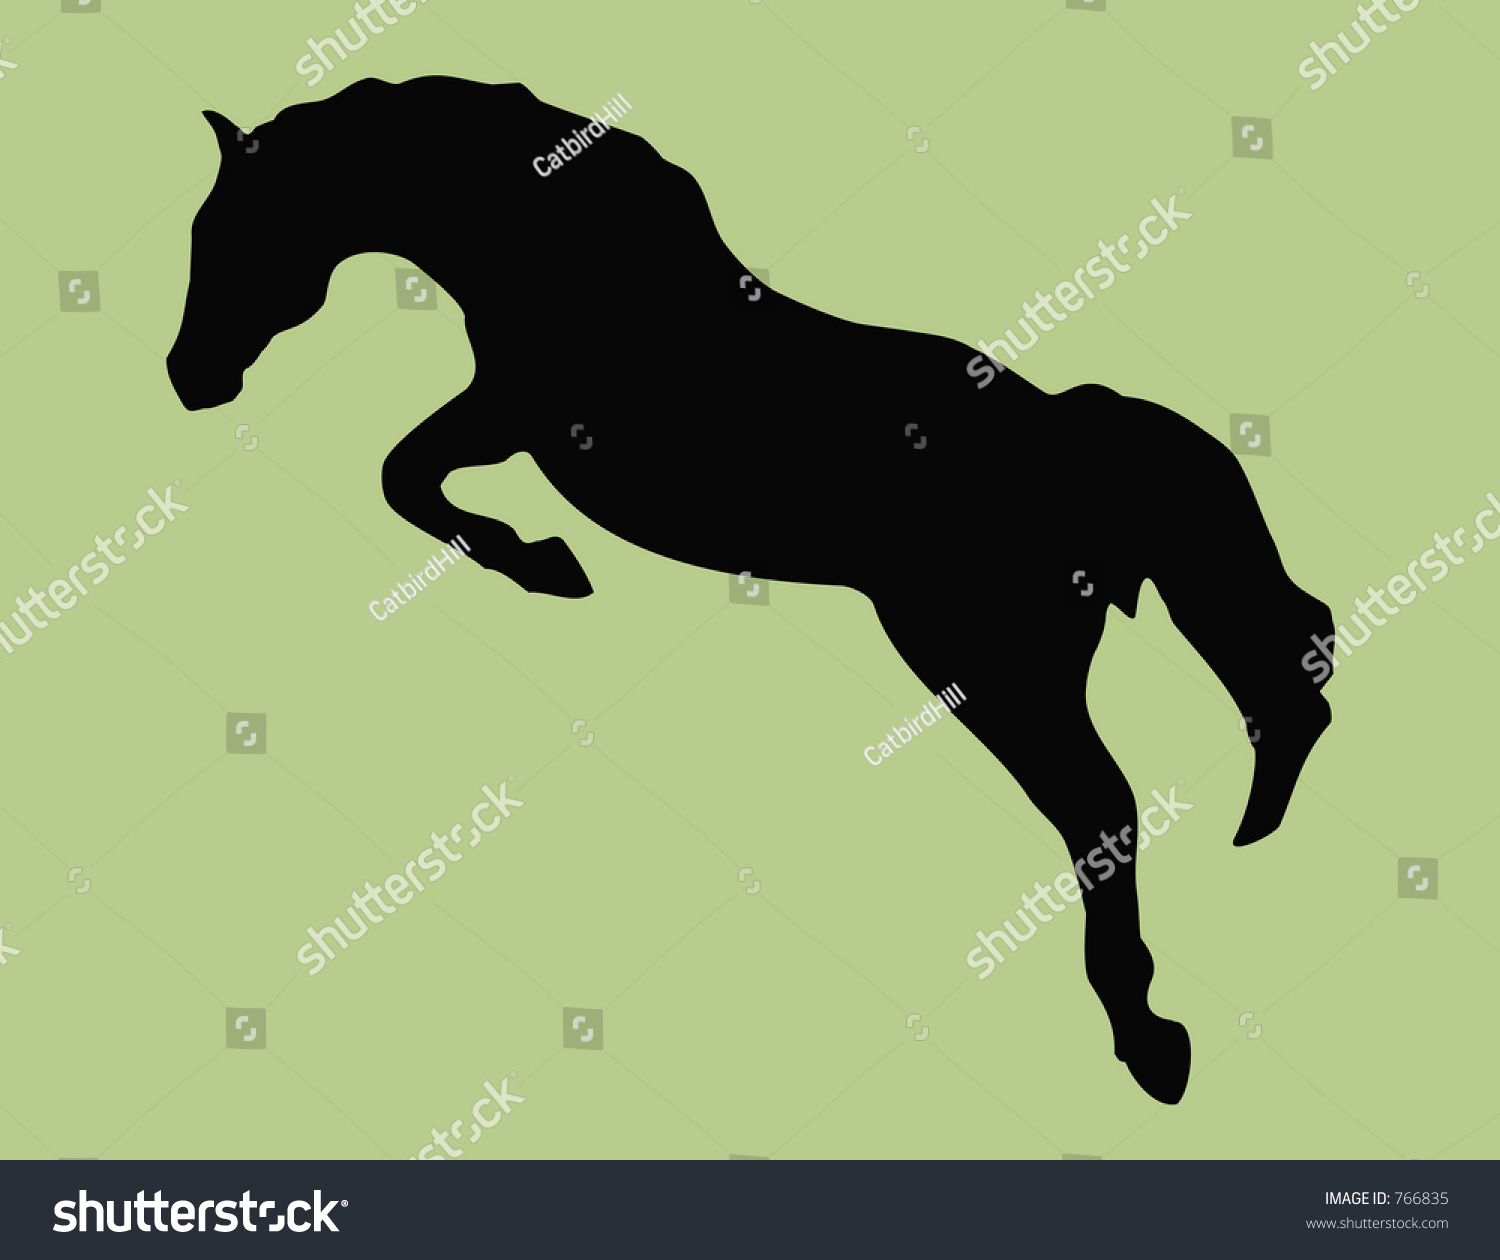 Equestrian jumping silhouette